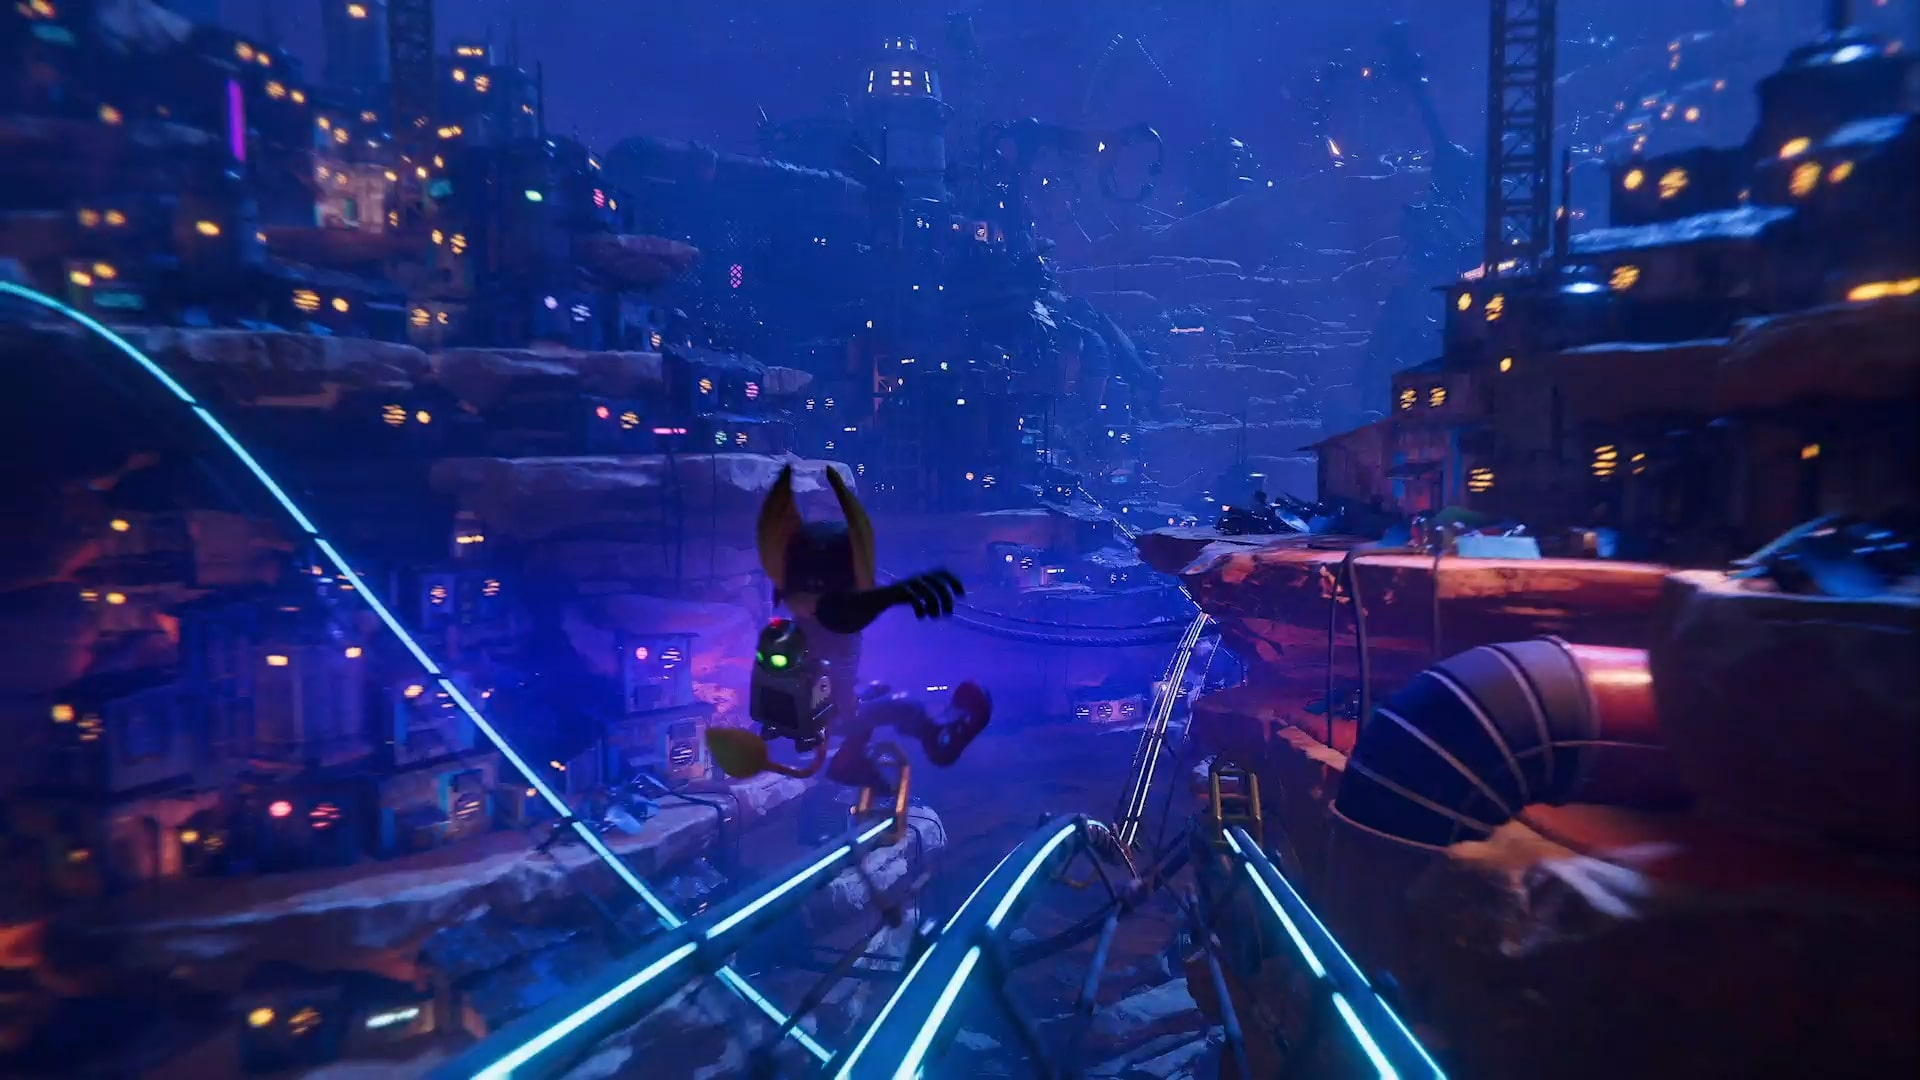 PS5 Sony Ratchet and Clank Rift Apart